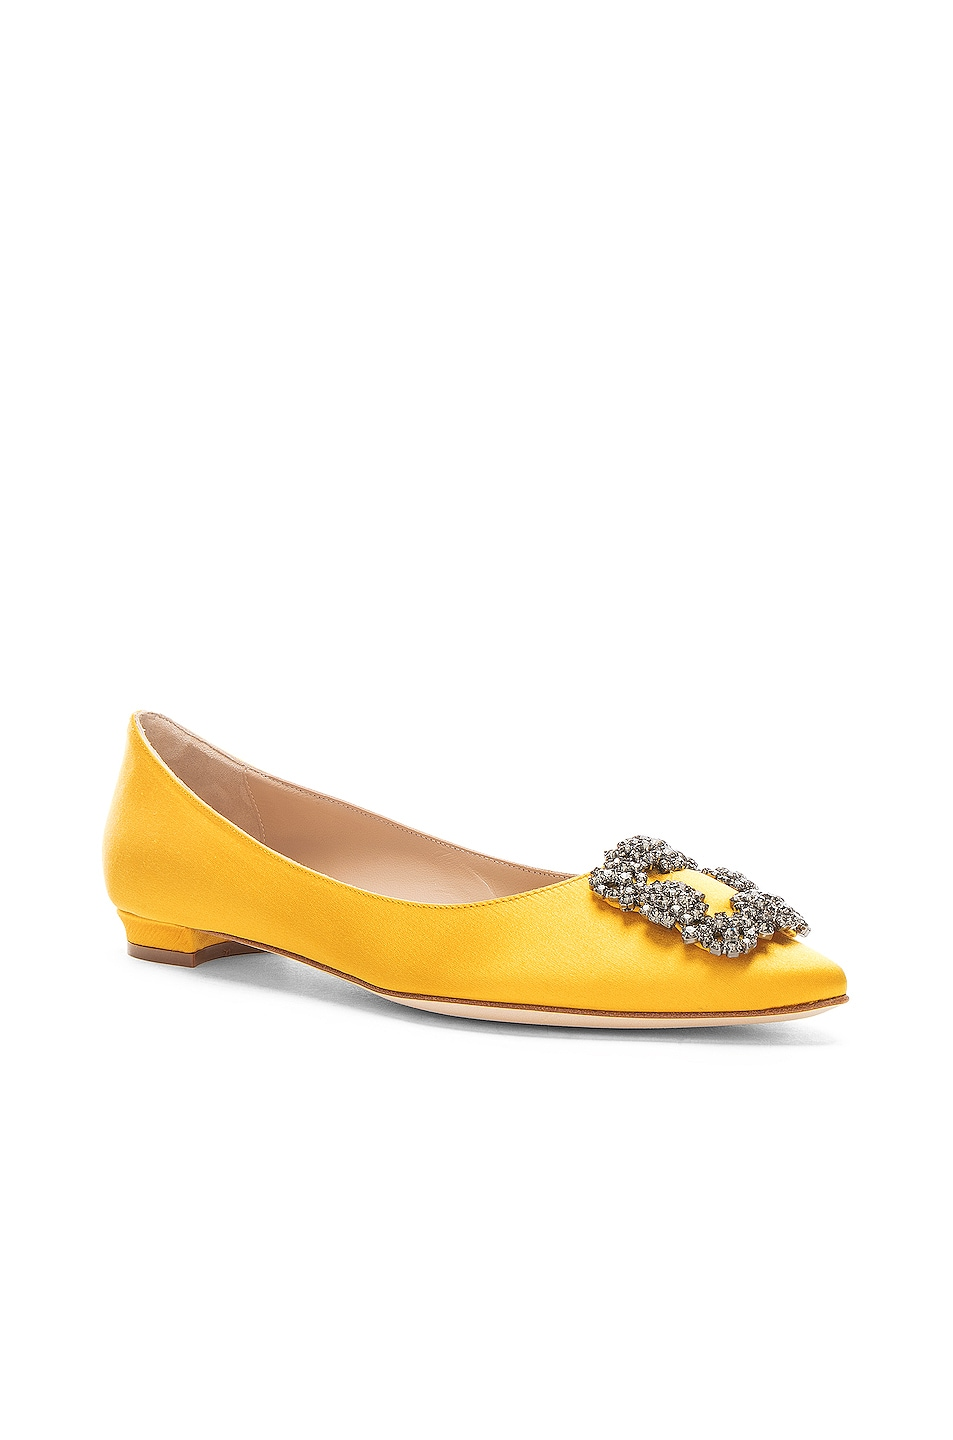 Image 2 of Manolo Blahnik Hangisiflat Satin 10 Pea Flat in Yellow